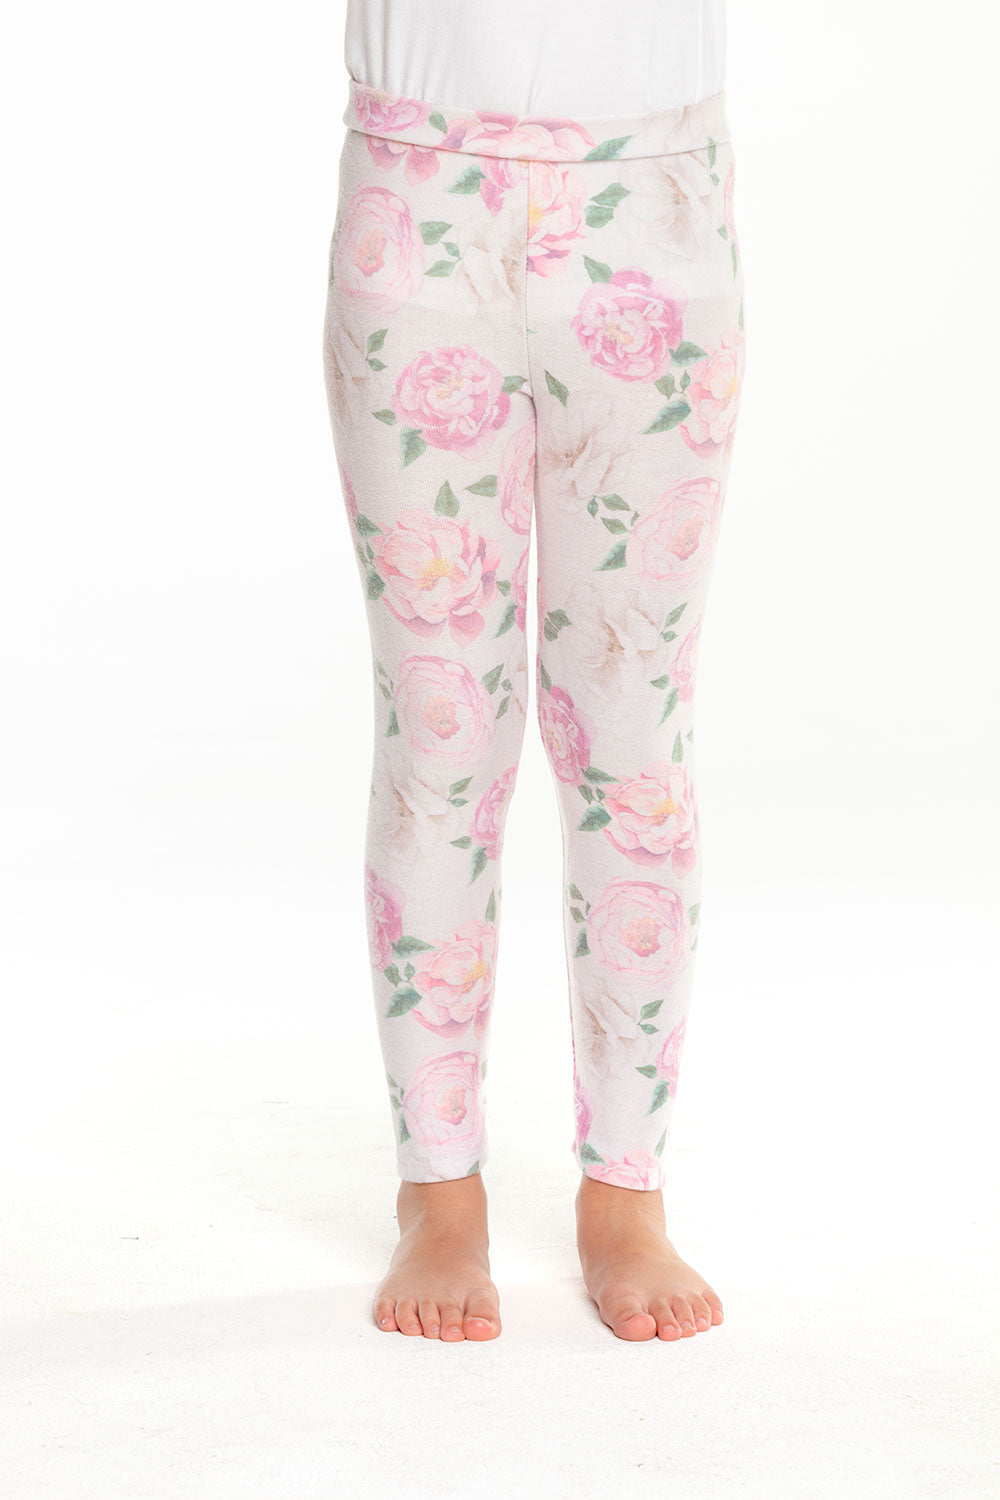 Floral Party Pants BCA chaserbrand4.myshopify.com